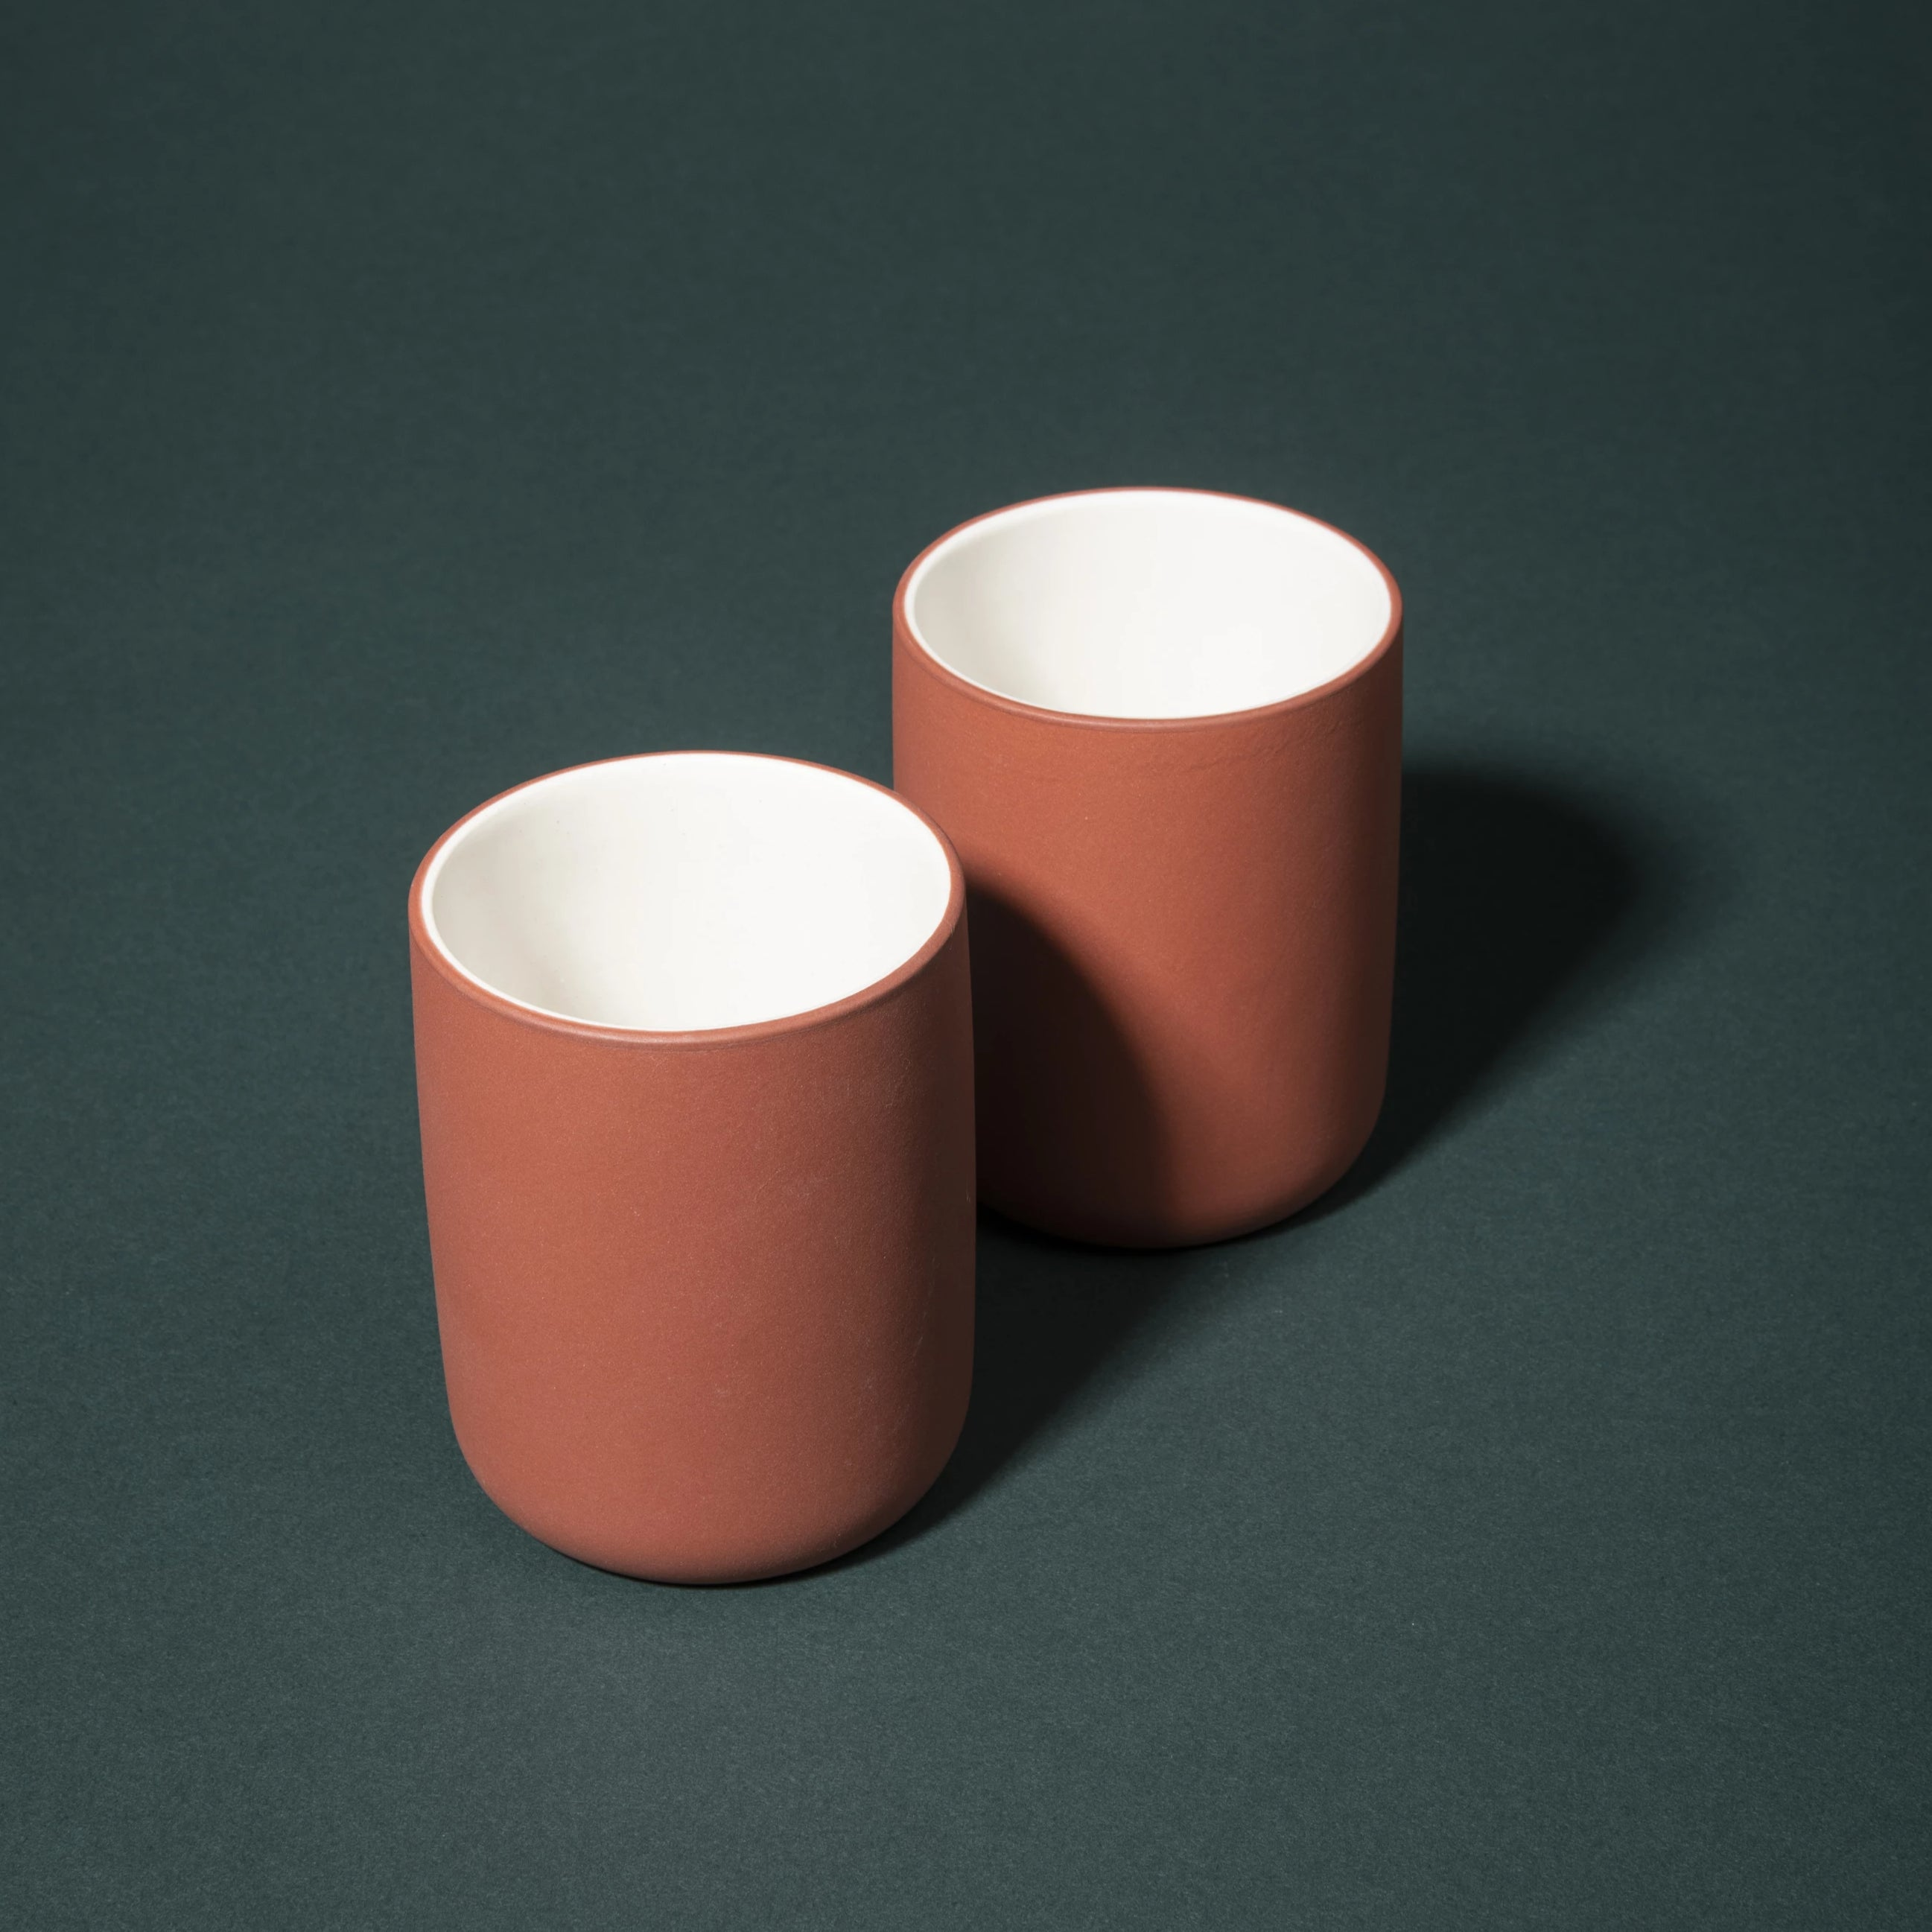 Archive Studio Amsterdam Terracotta Colored Stoneware Mugs